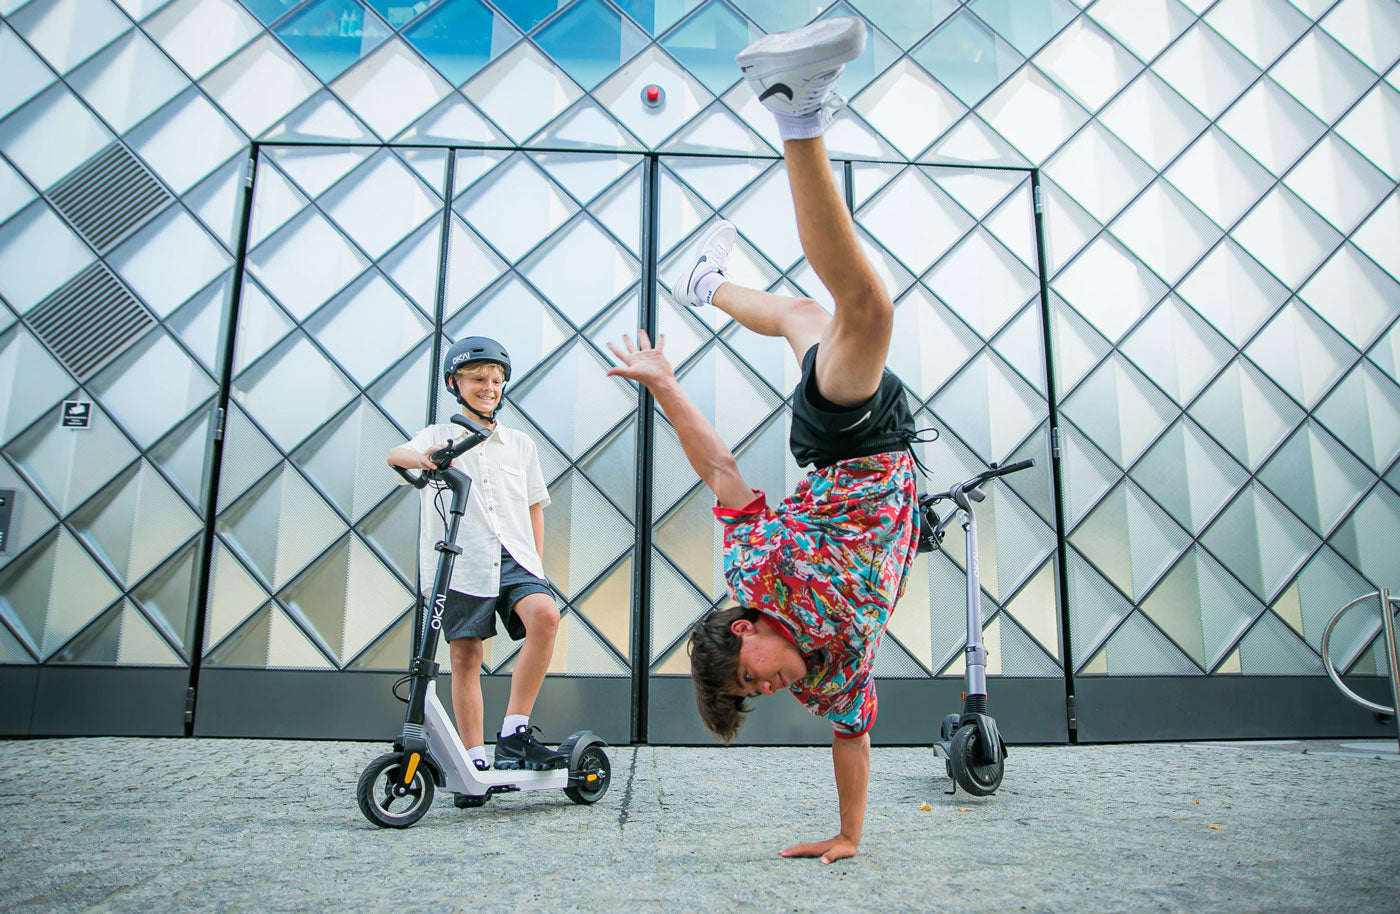 Okai-Electric-Scooter-&-Electric-Bike-Manufacturer-ES50-Kid-performing-a-handstand-in-front-of-the-electric-scooter